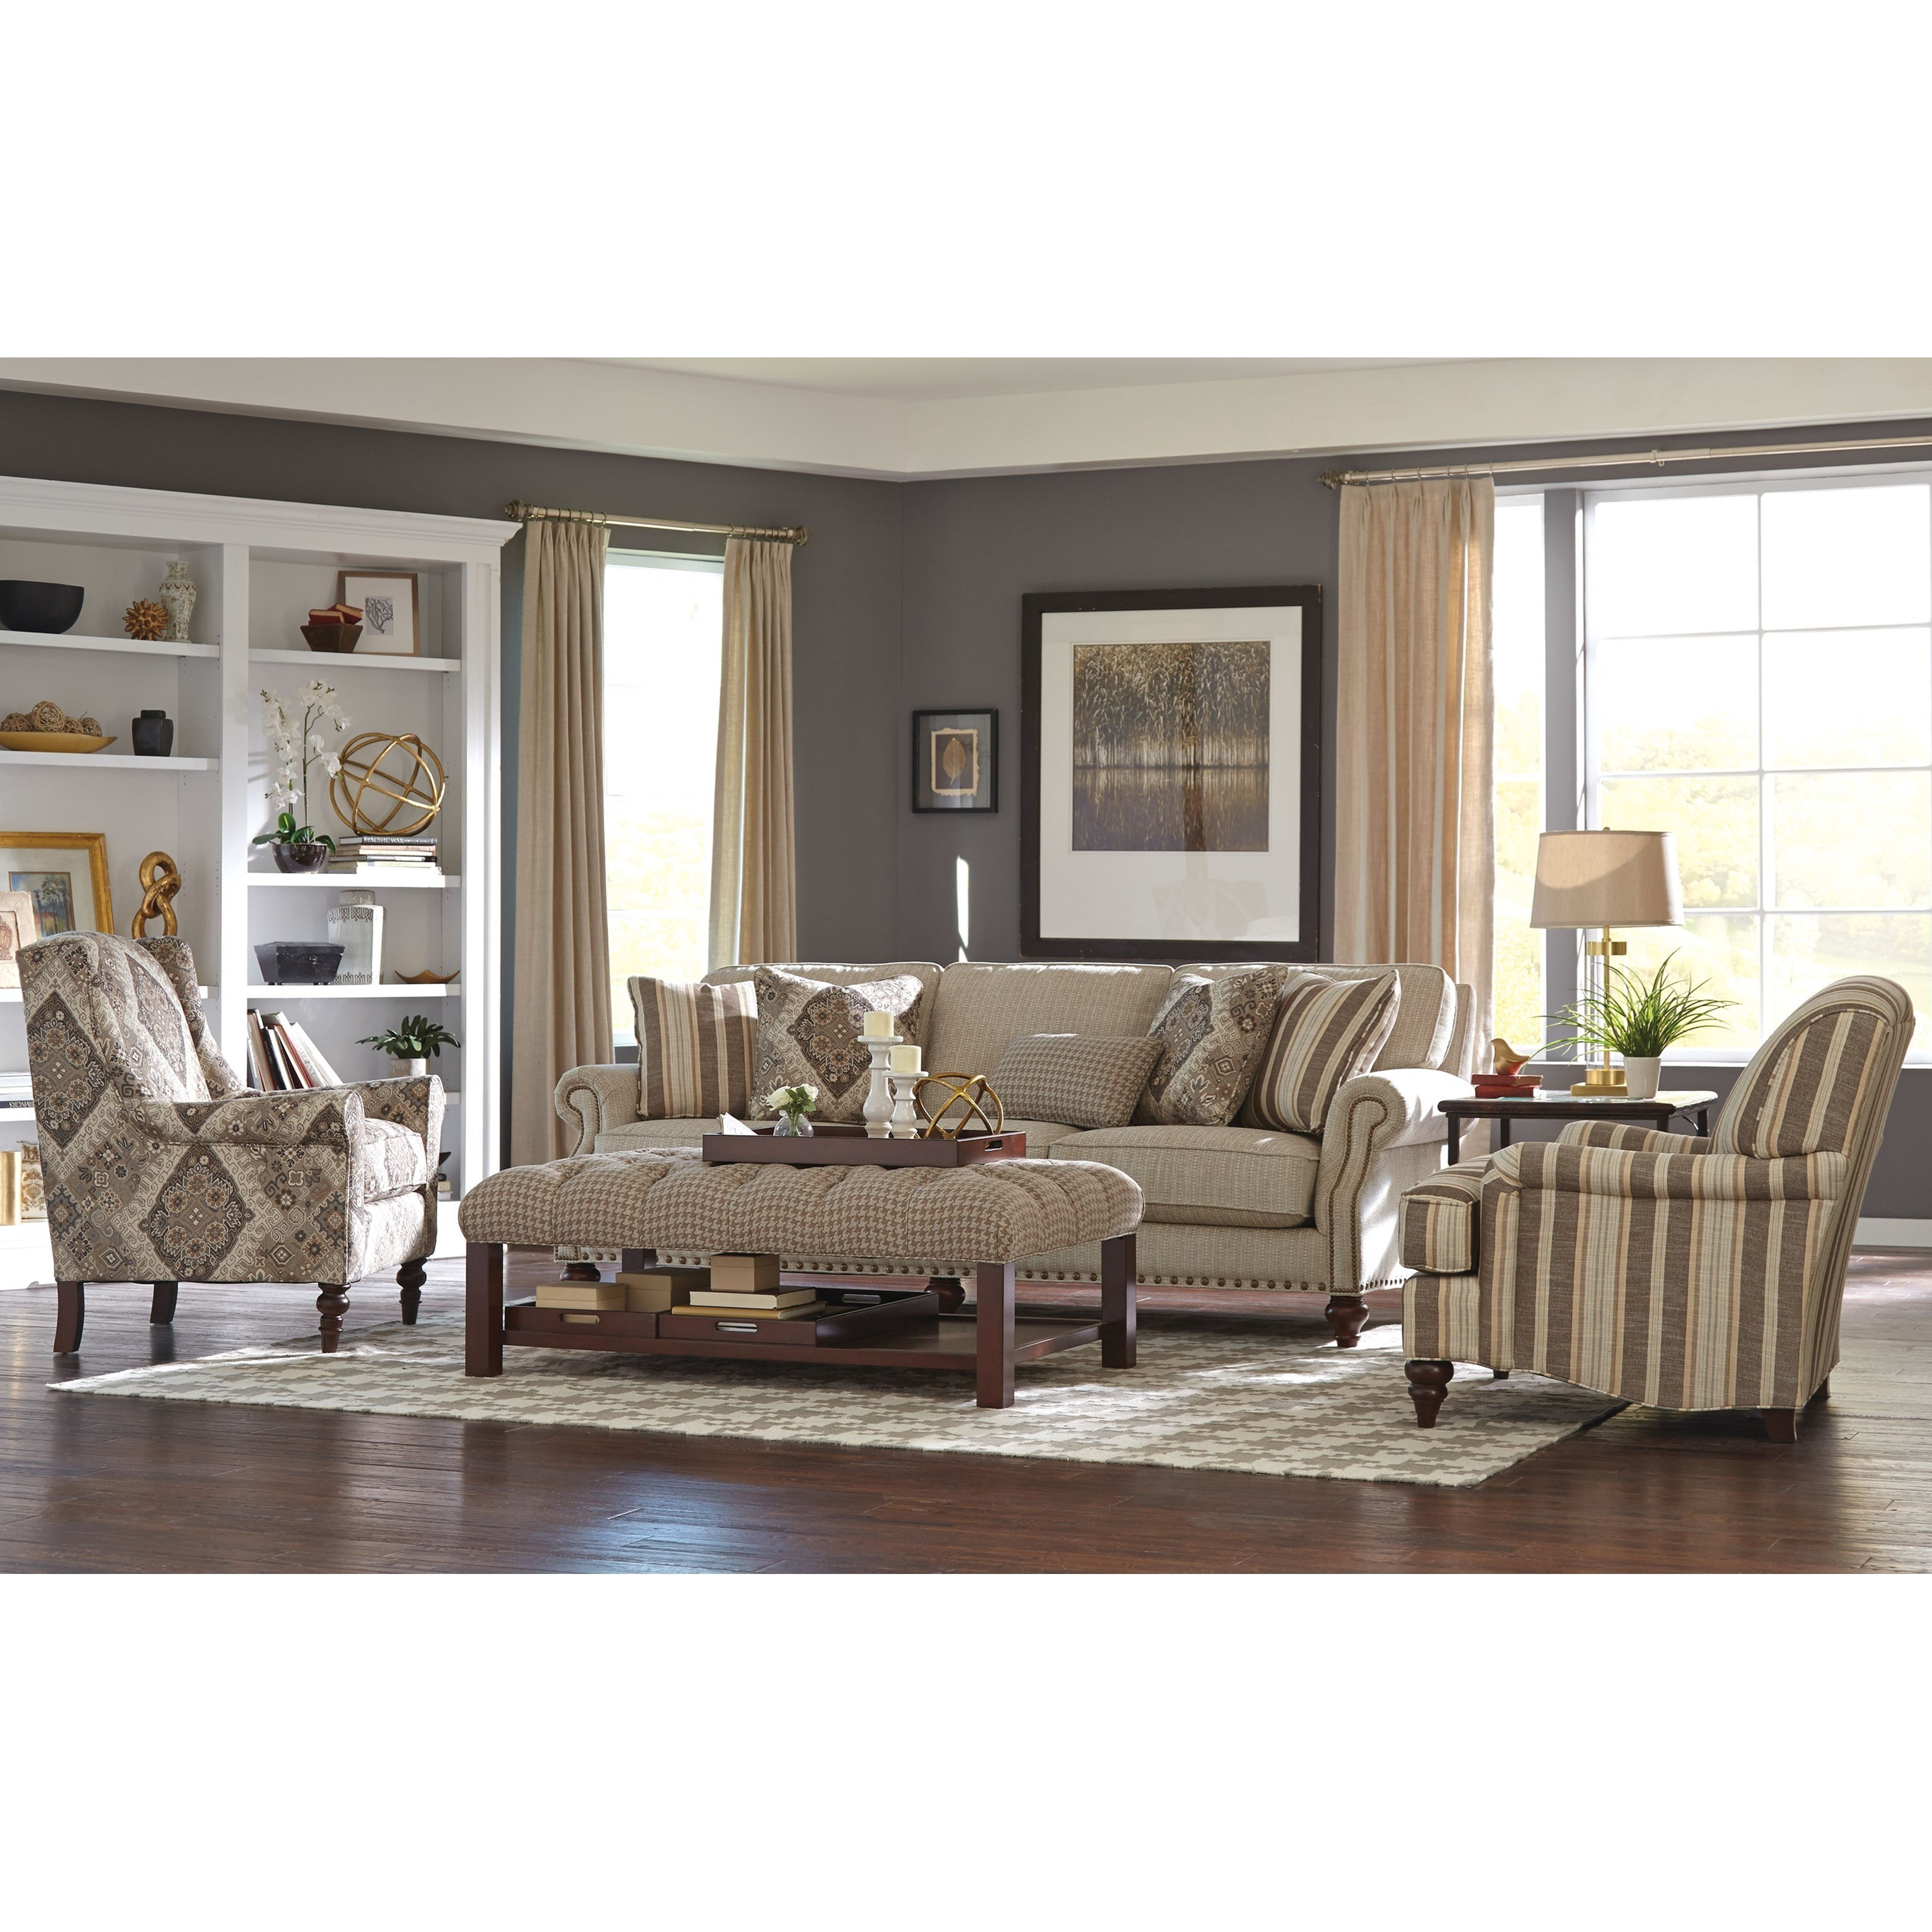 craftmaster chair and a half nc state bean bag accent chairs 058710 wing back with traditional chairschair